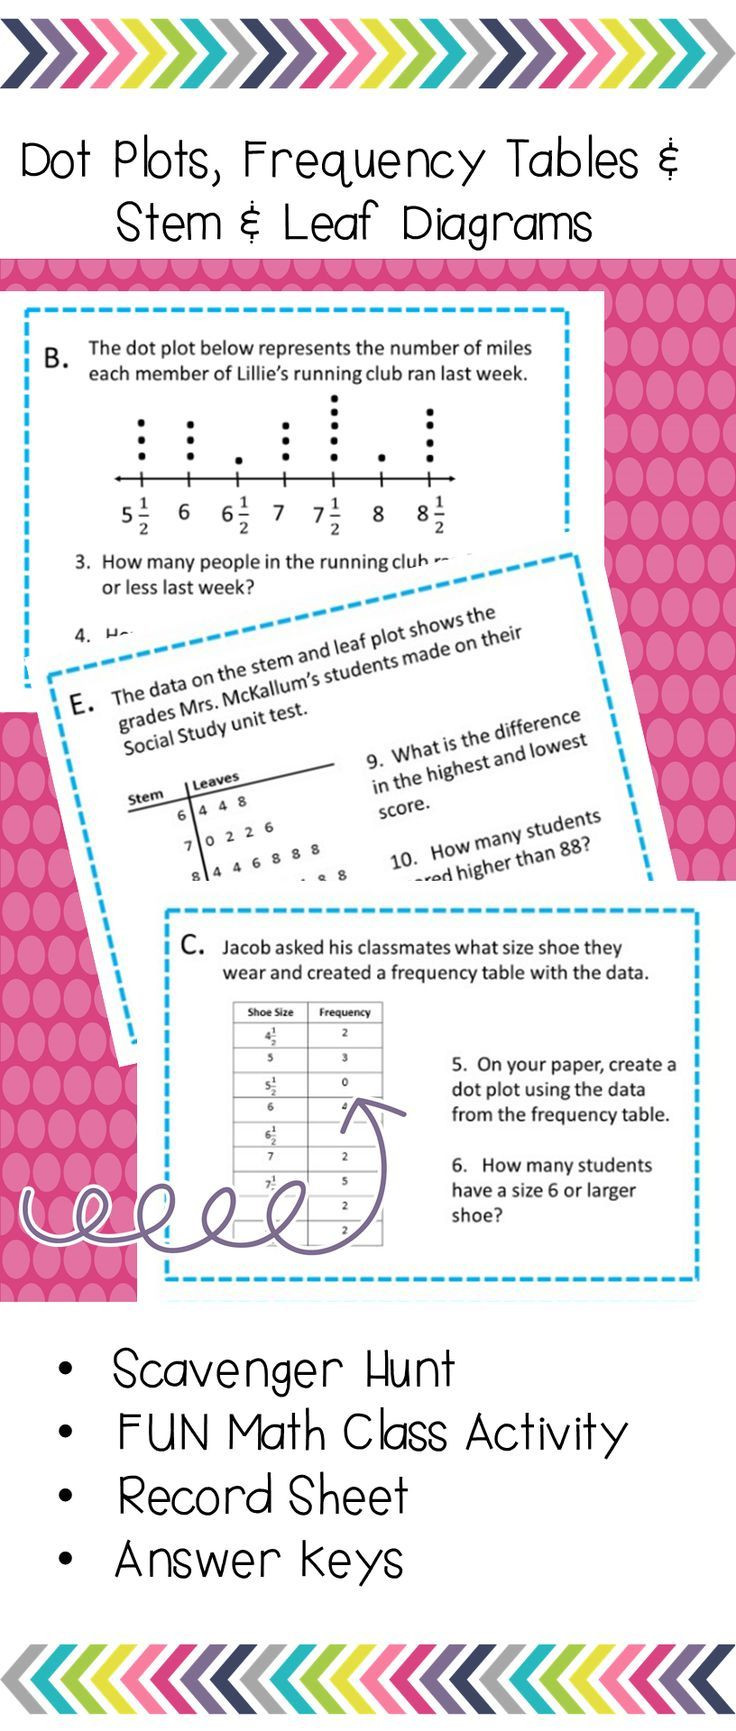 Dot Plot Worksheets 6th Grade Dot Plots Frequency Tables and Stem and Leaves Scavenger